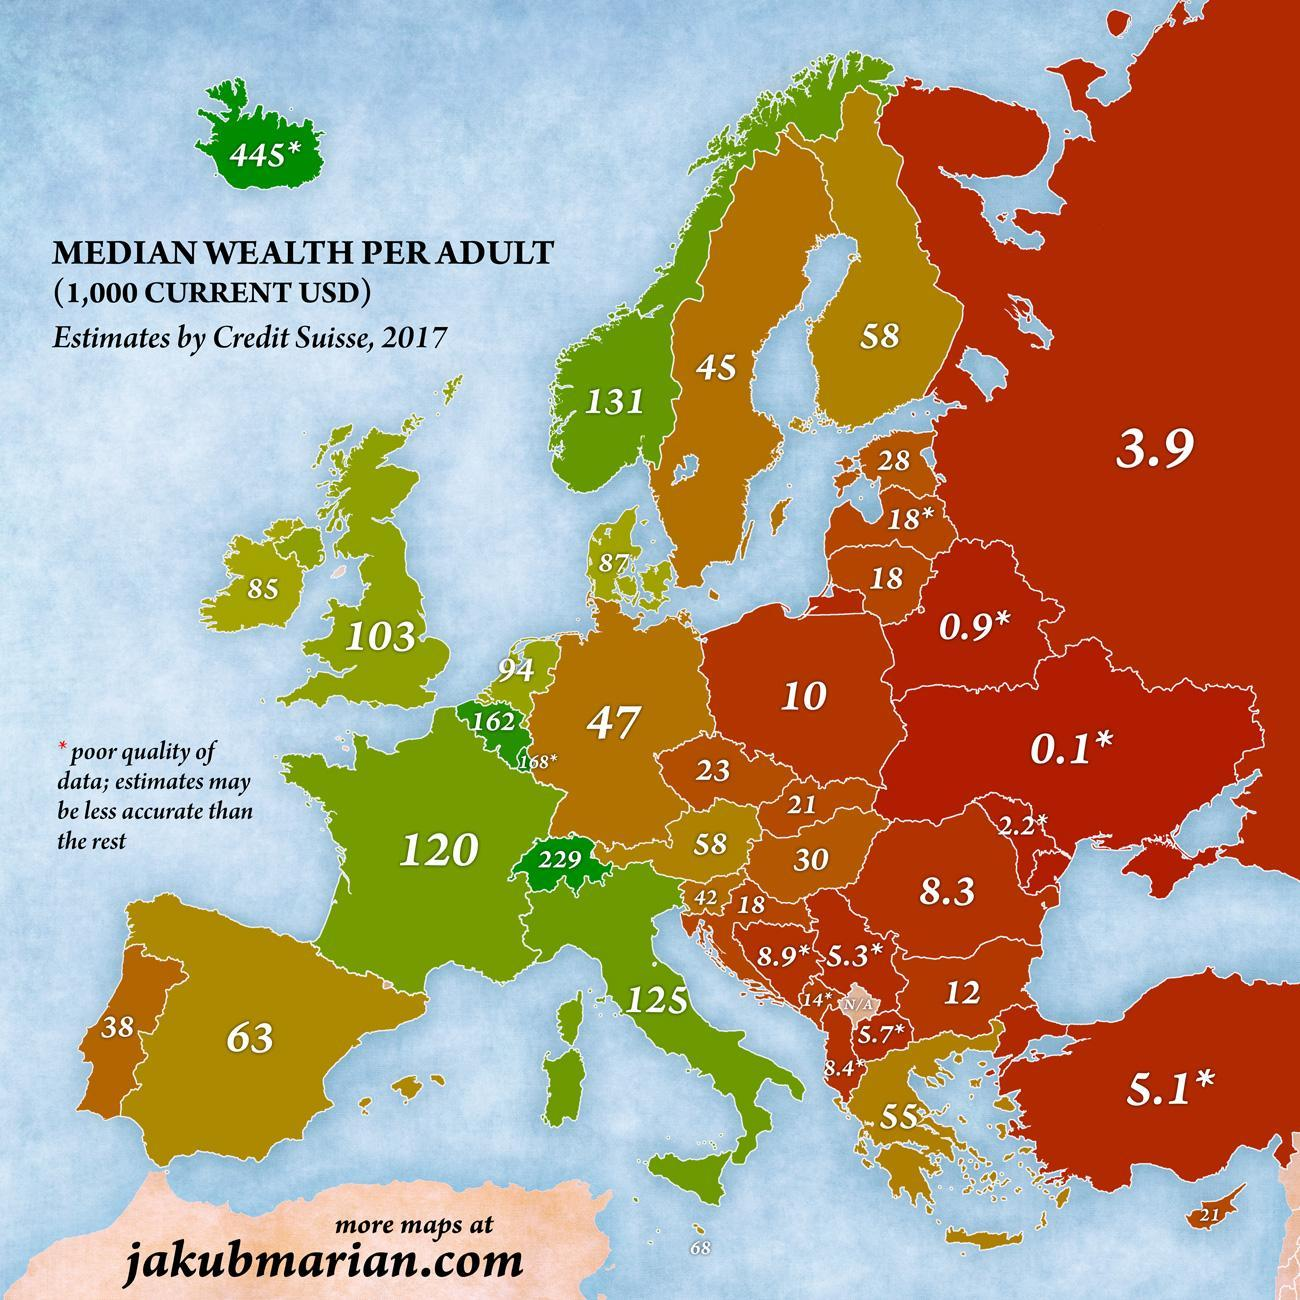 Map Europe 2016.The Wealthiest Countries In Europe Mapped Indy100